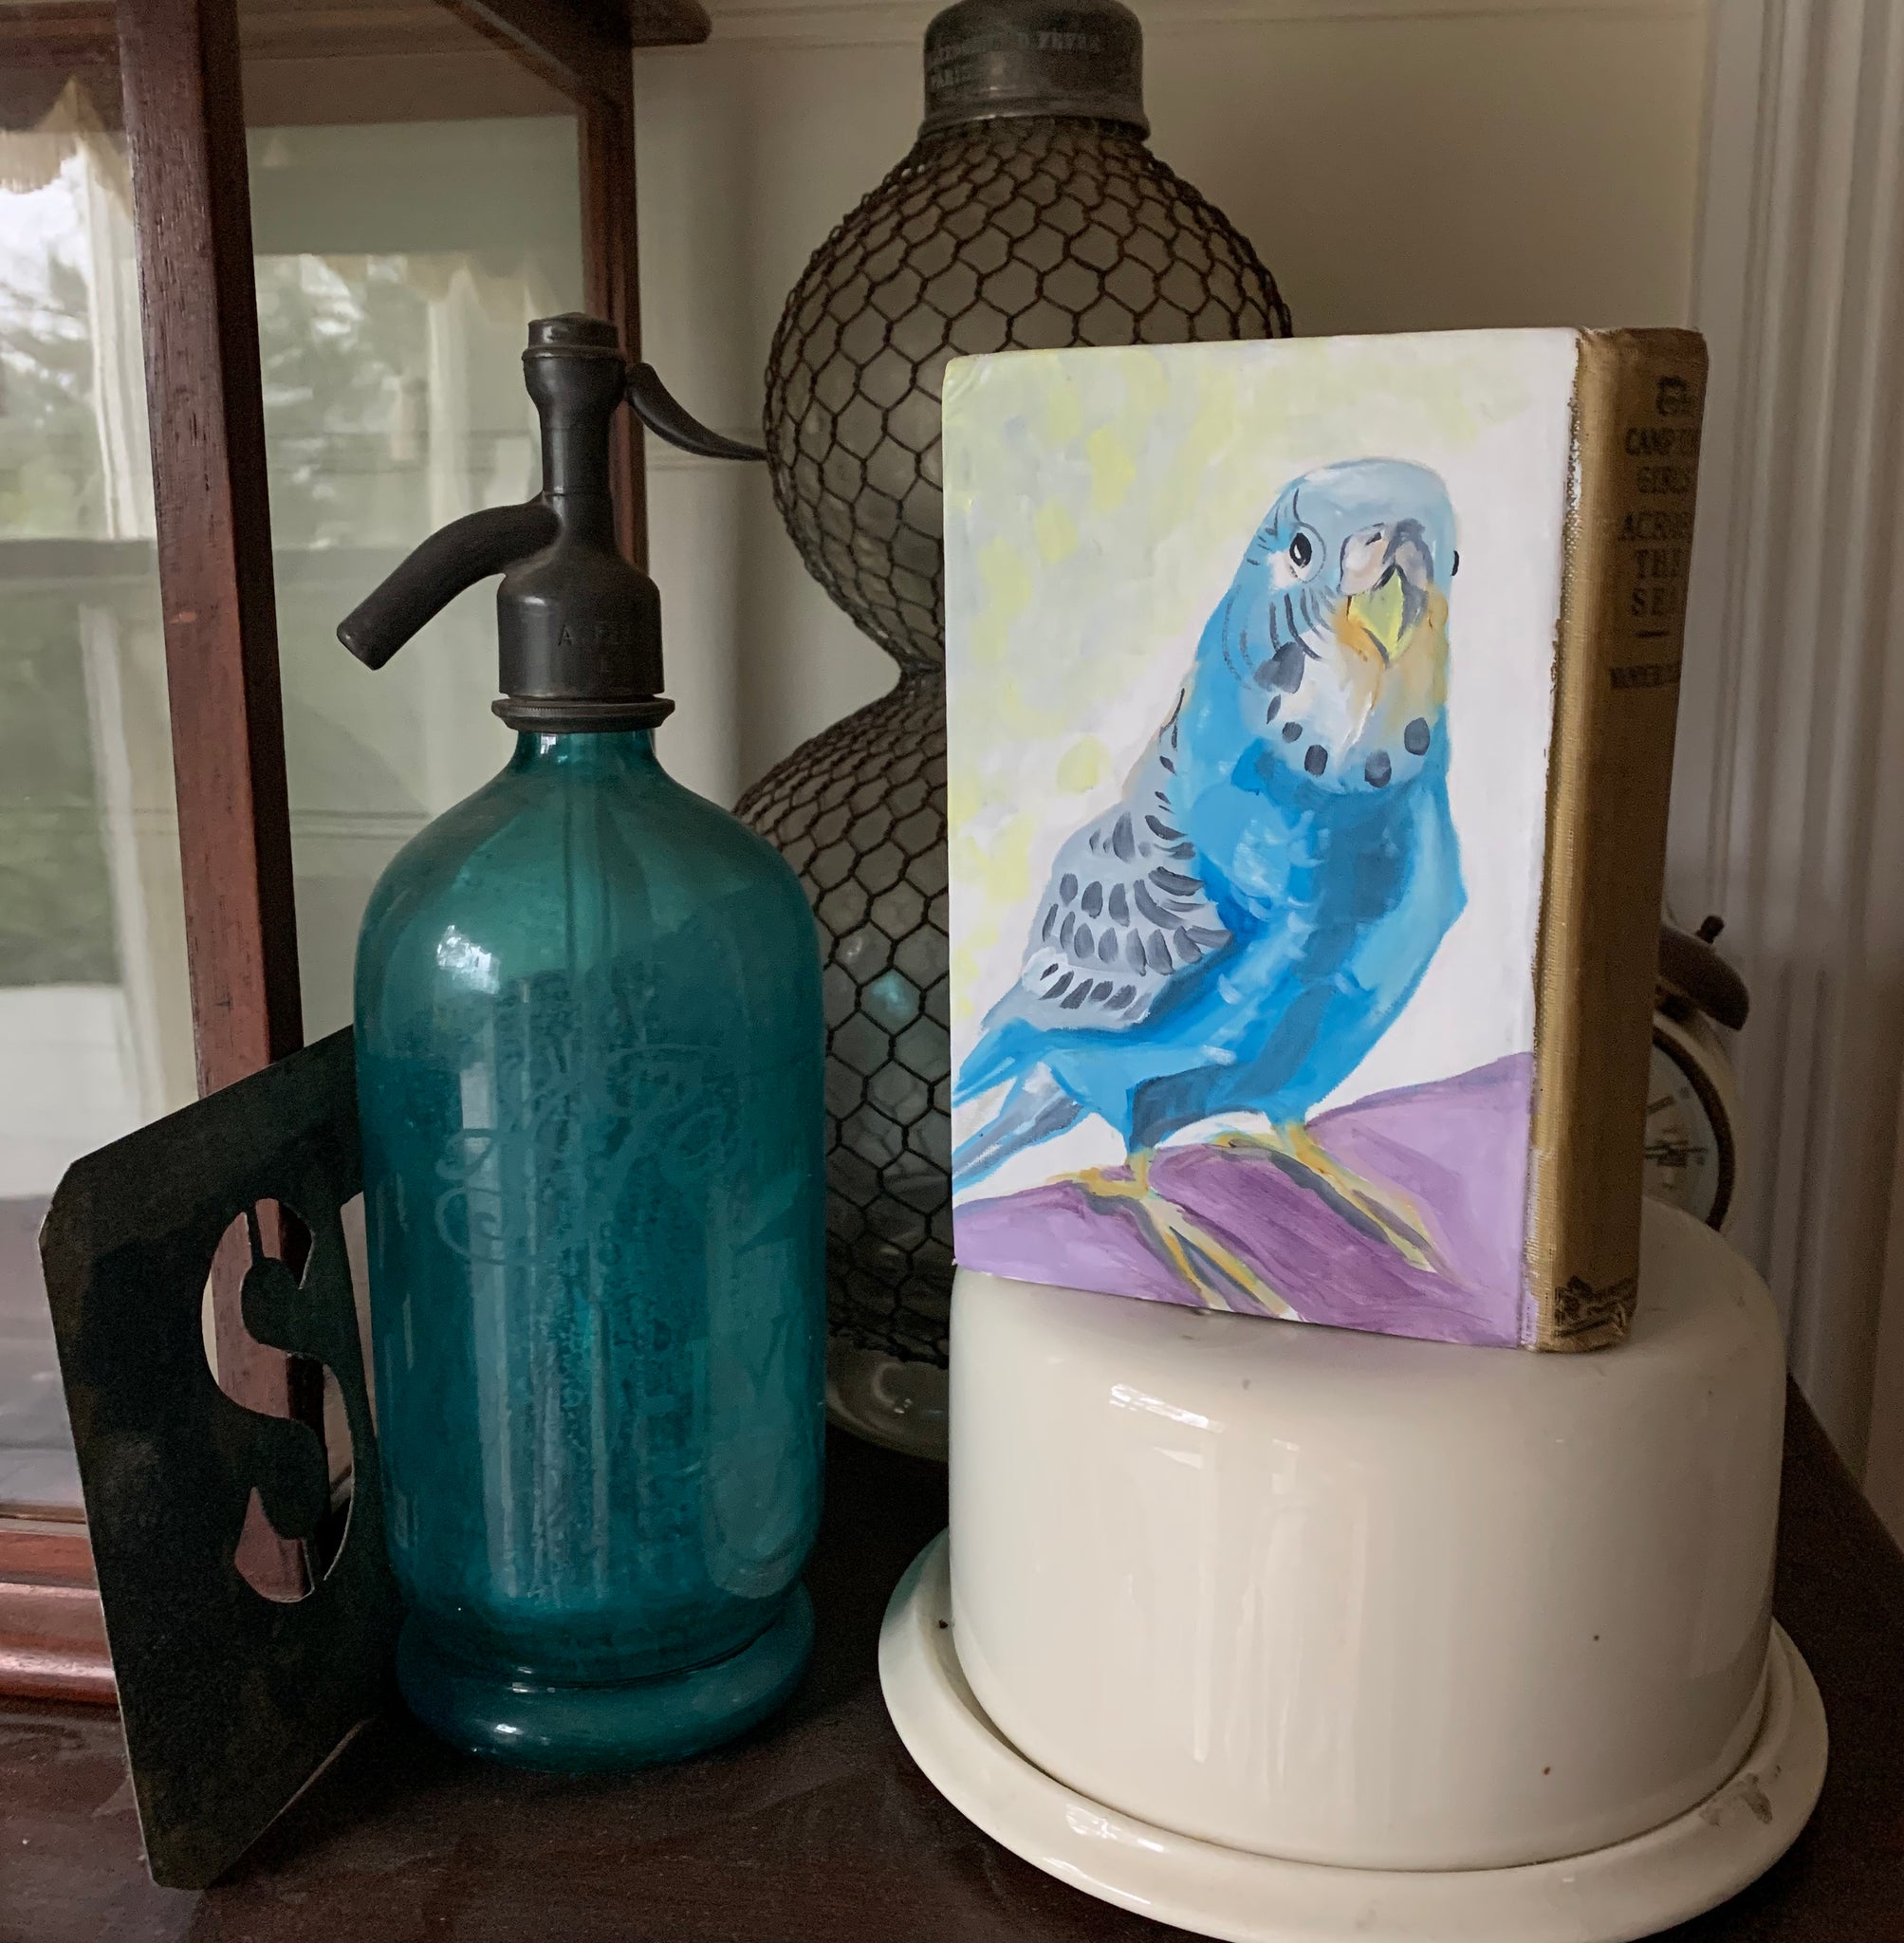 Bubbles the Budgie - Original Oil Book Painting